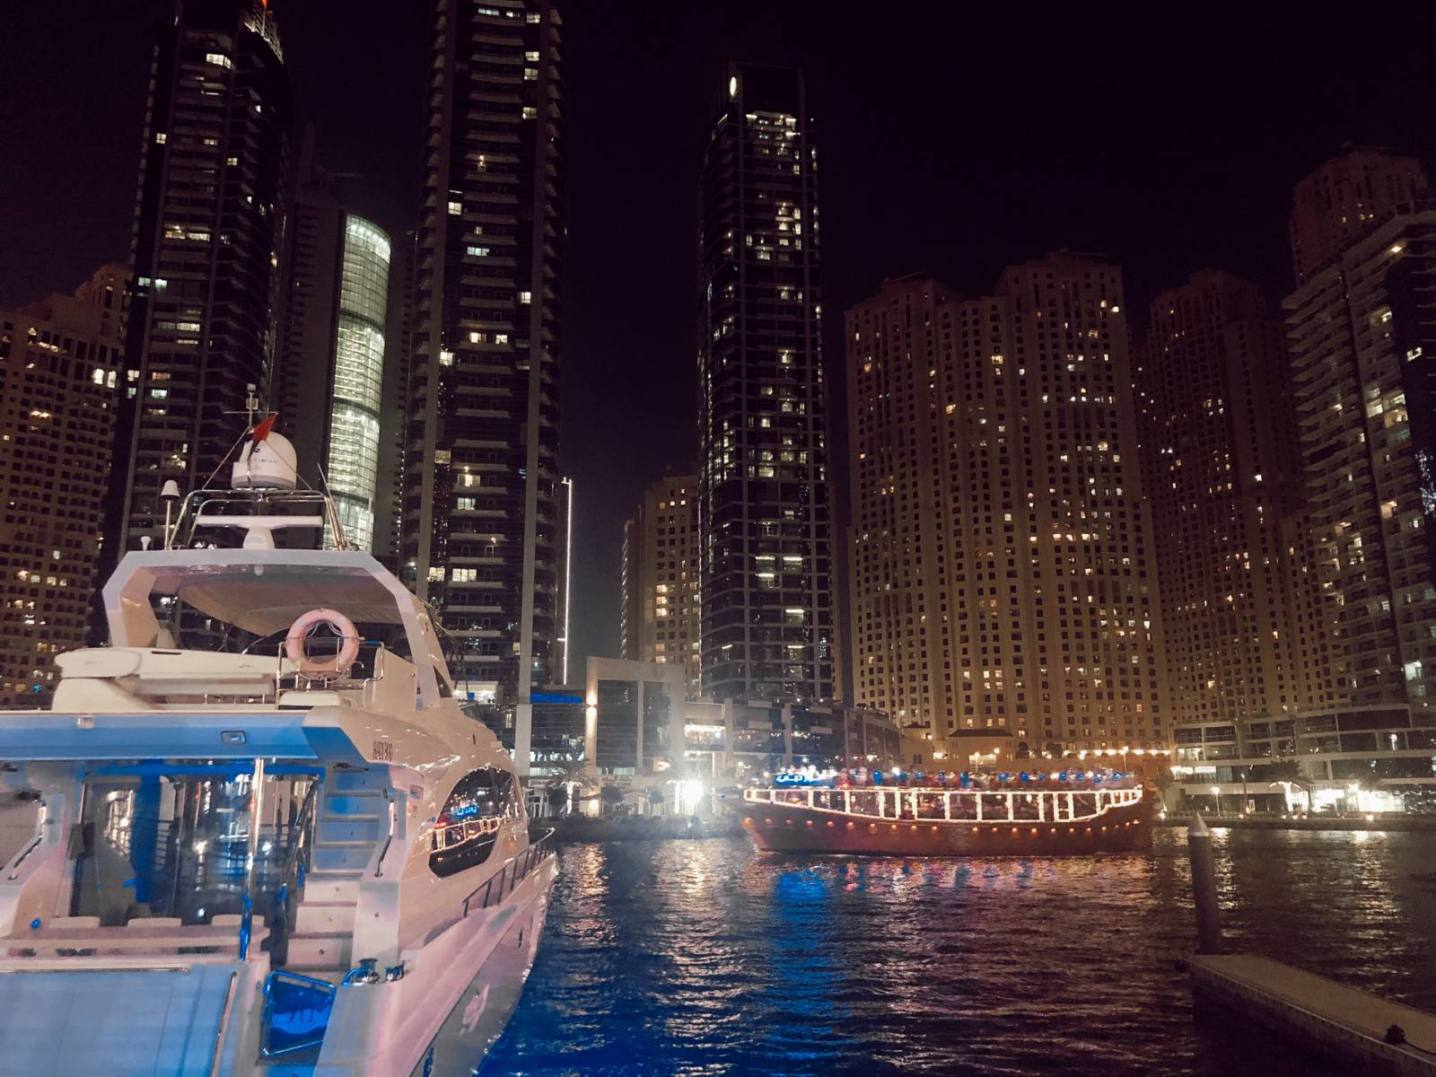 Dubai Marina by night.